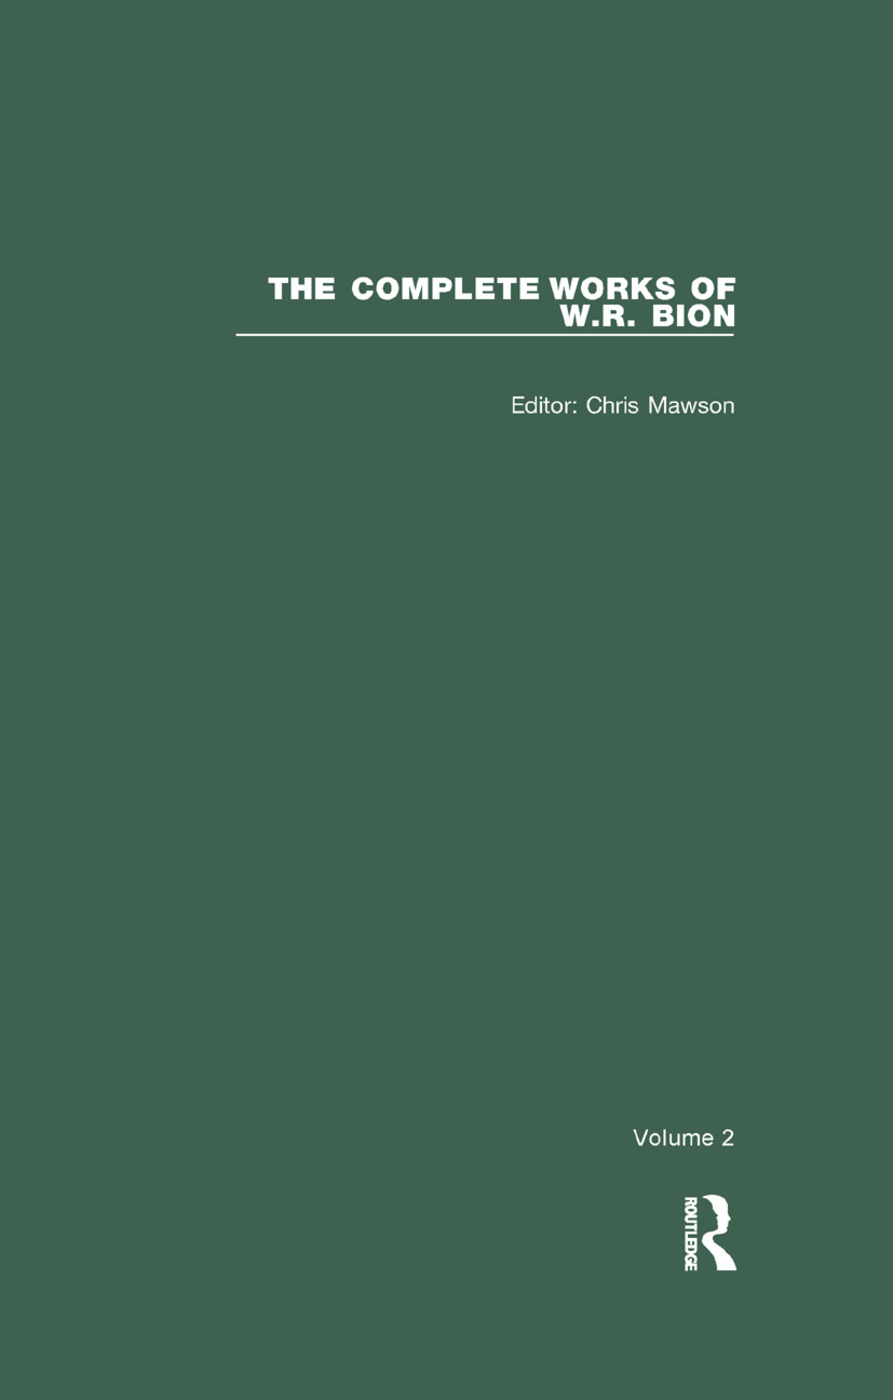 The Complete Works of W.R. Bion: Volume 2, 1st Edition (Paperback) book cover